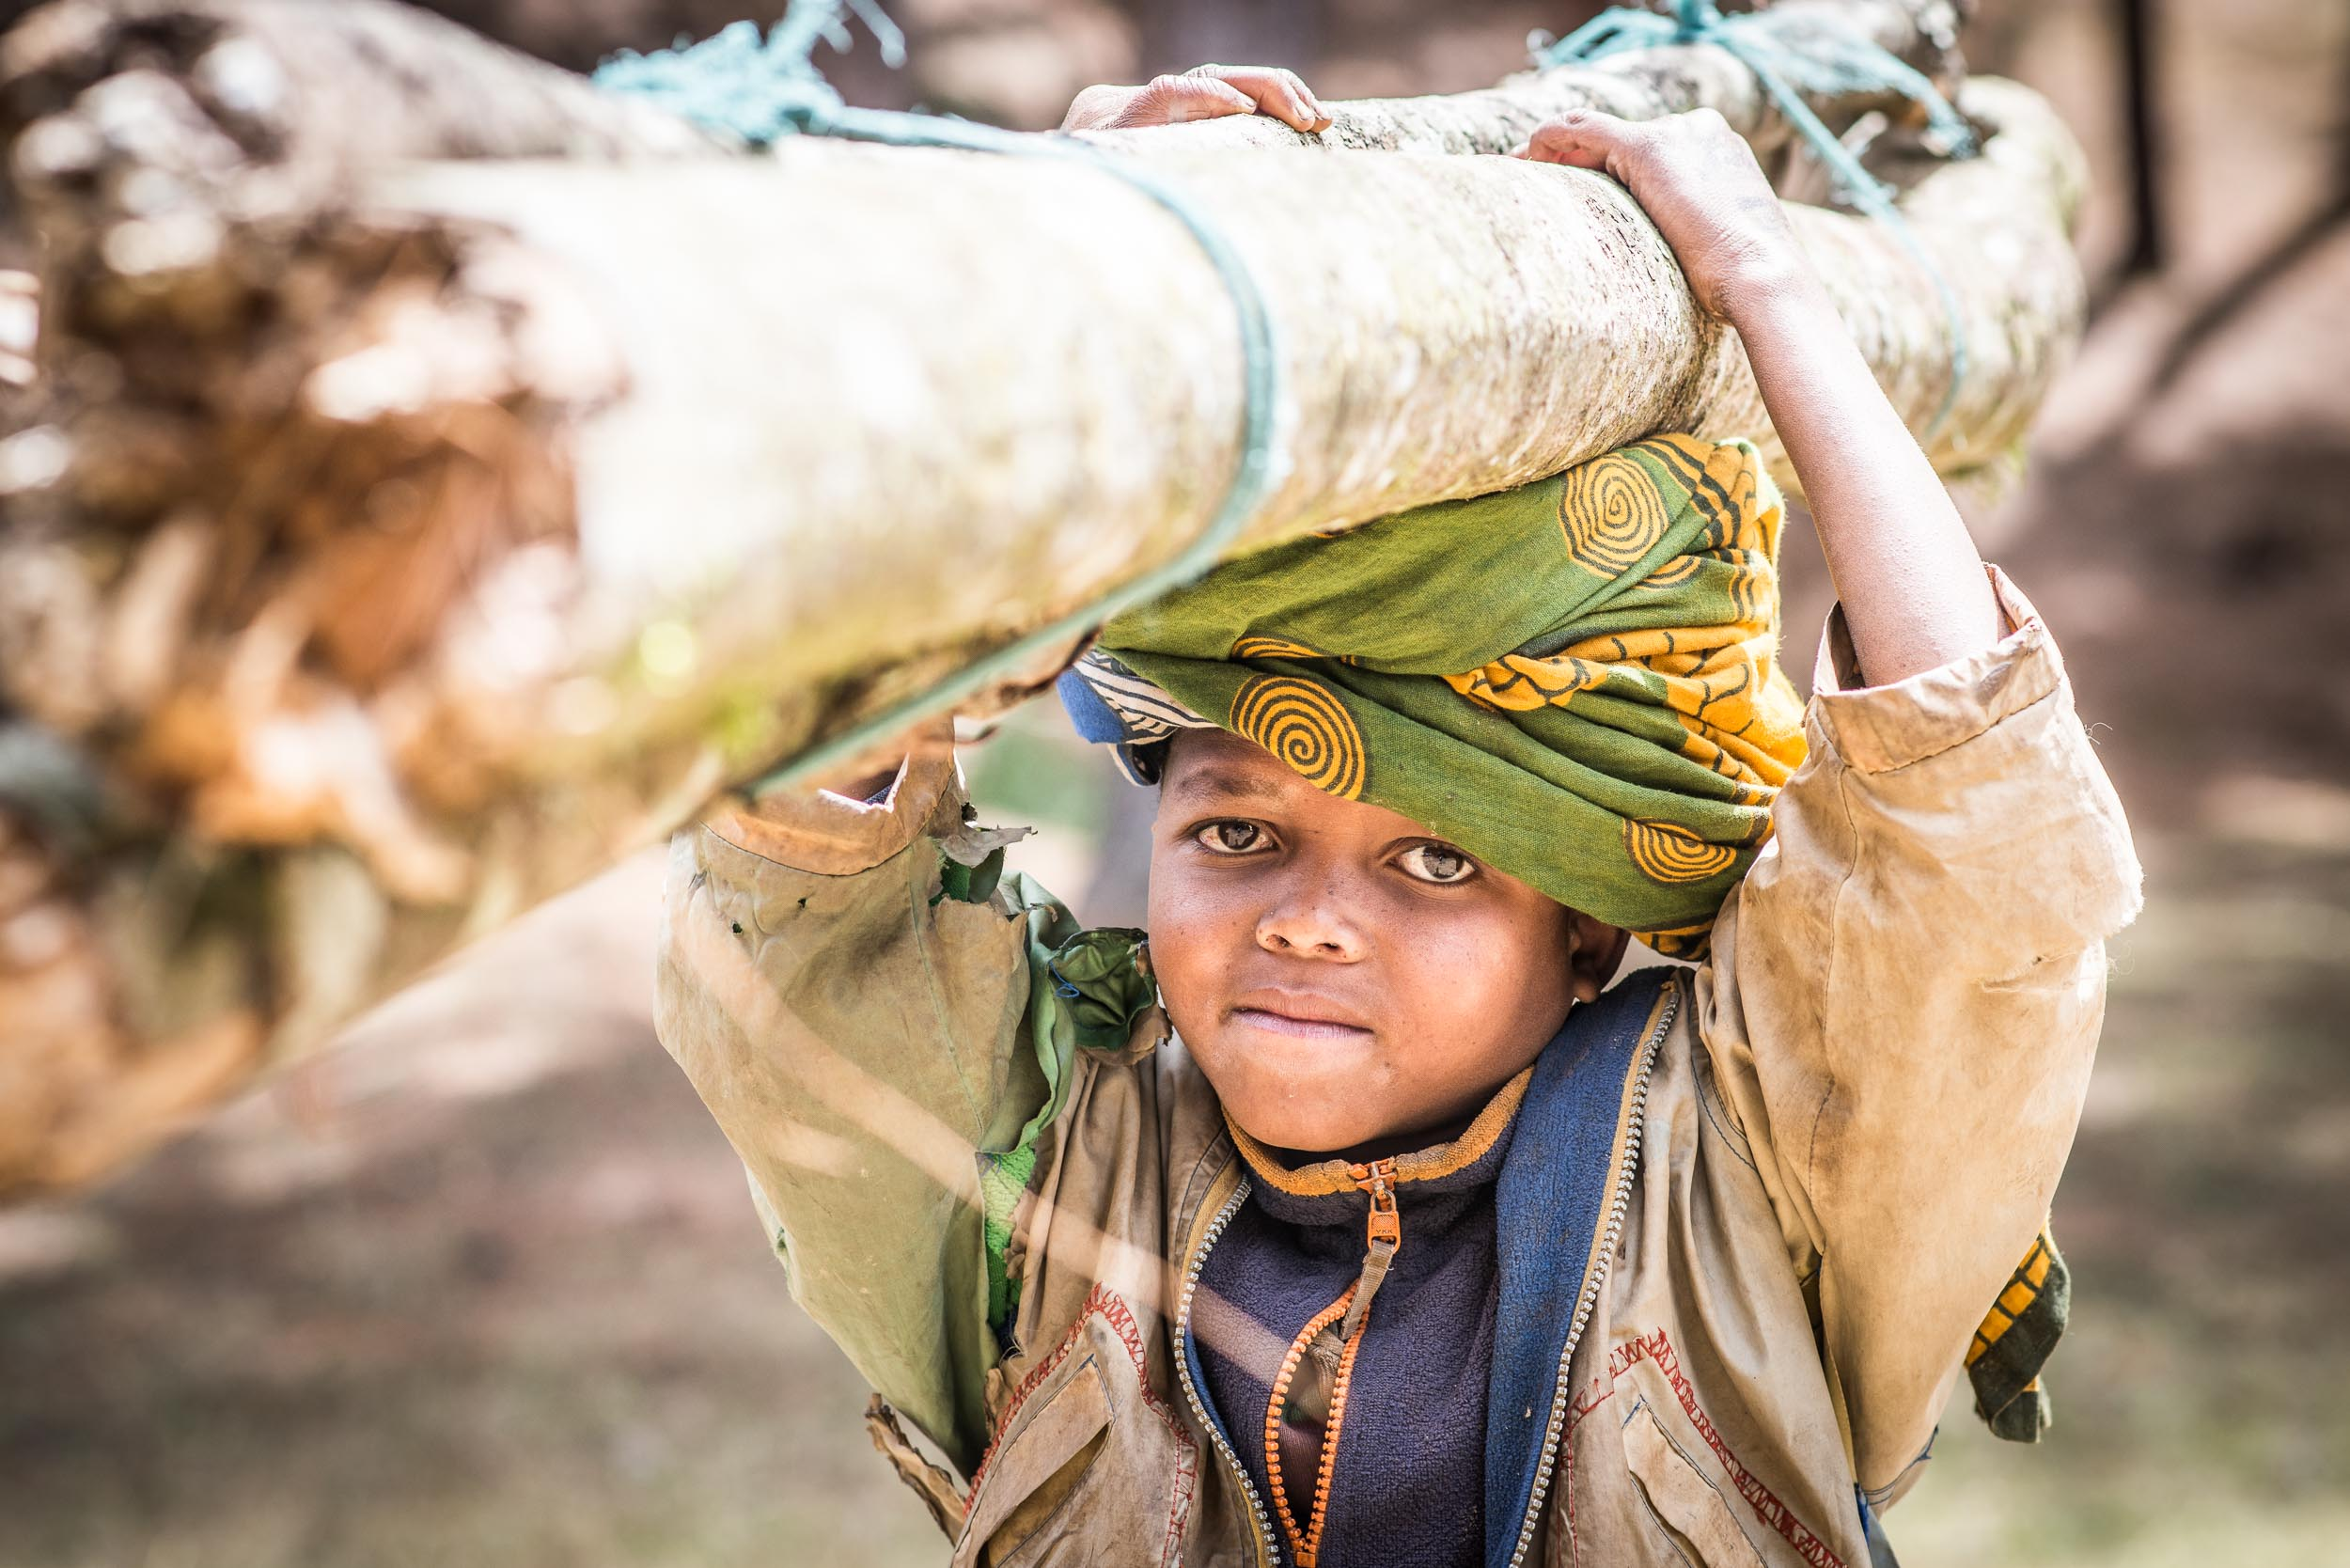 Tanzania - boy carrying tree - Travel - Photo credit Nicola Bailey.jpg